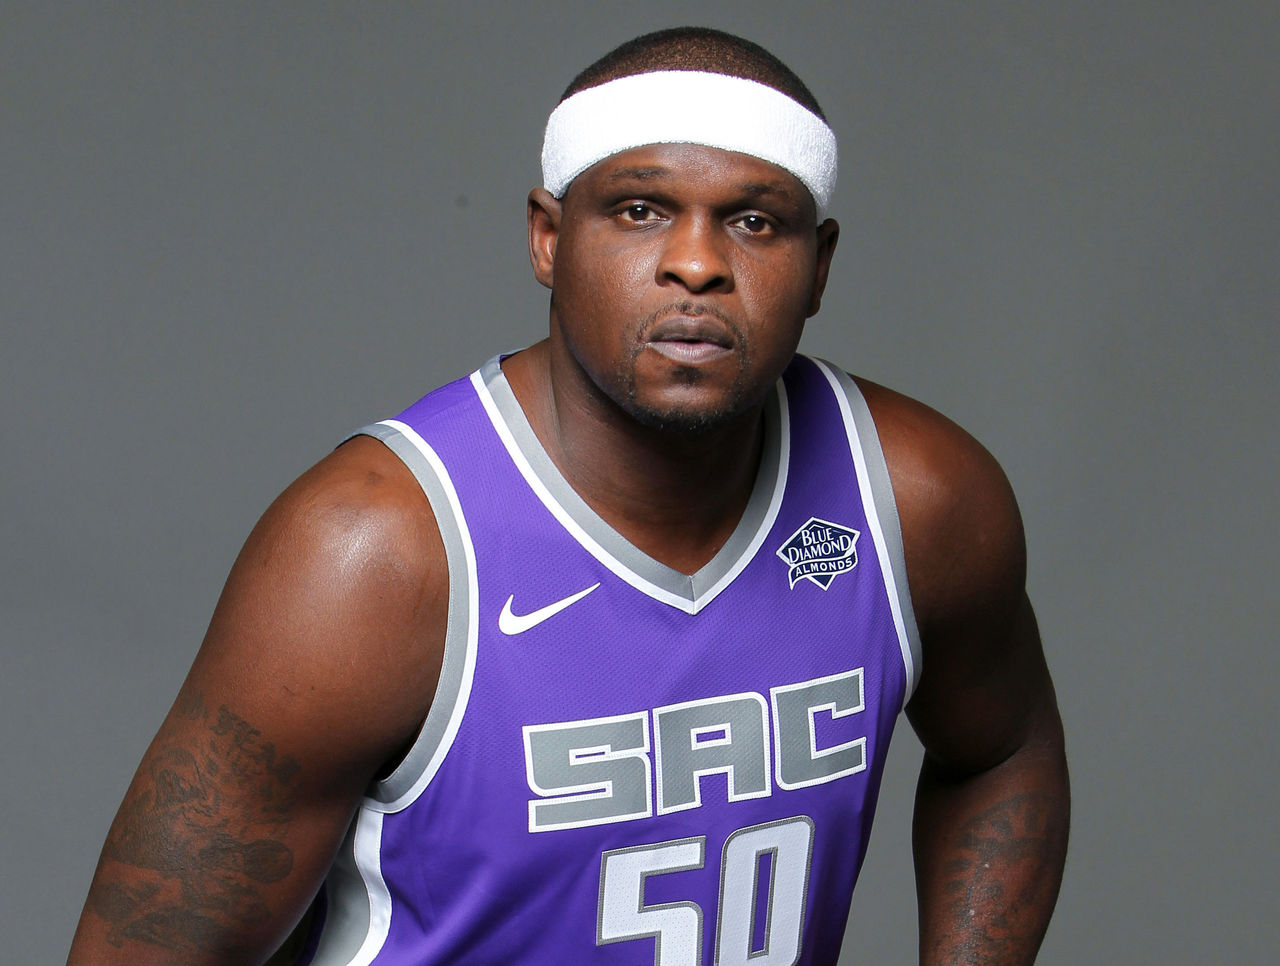 Cropped_2017-09-26t003703z_410576762_nocid_rtrmadp_3_nba-sacramento-kings-media-day